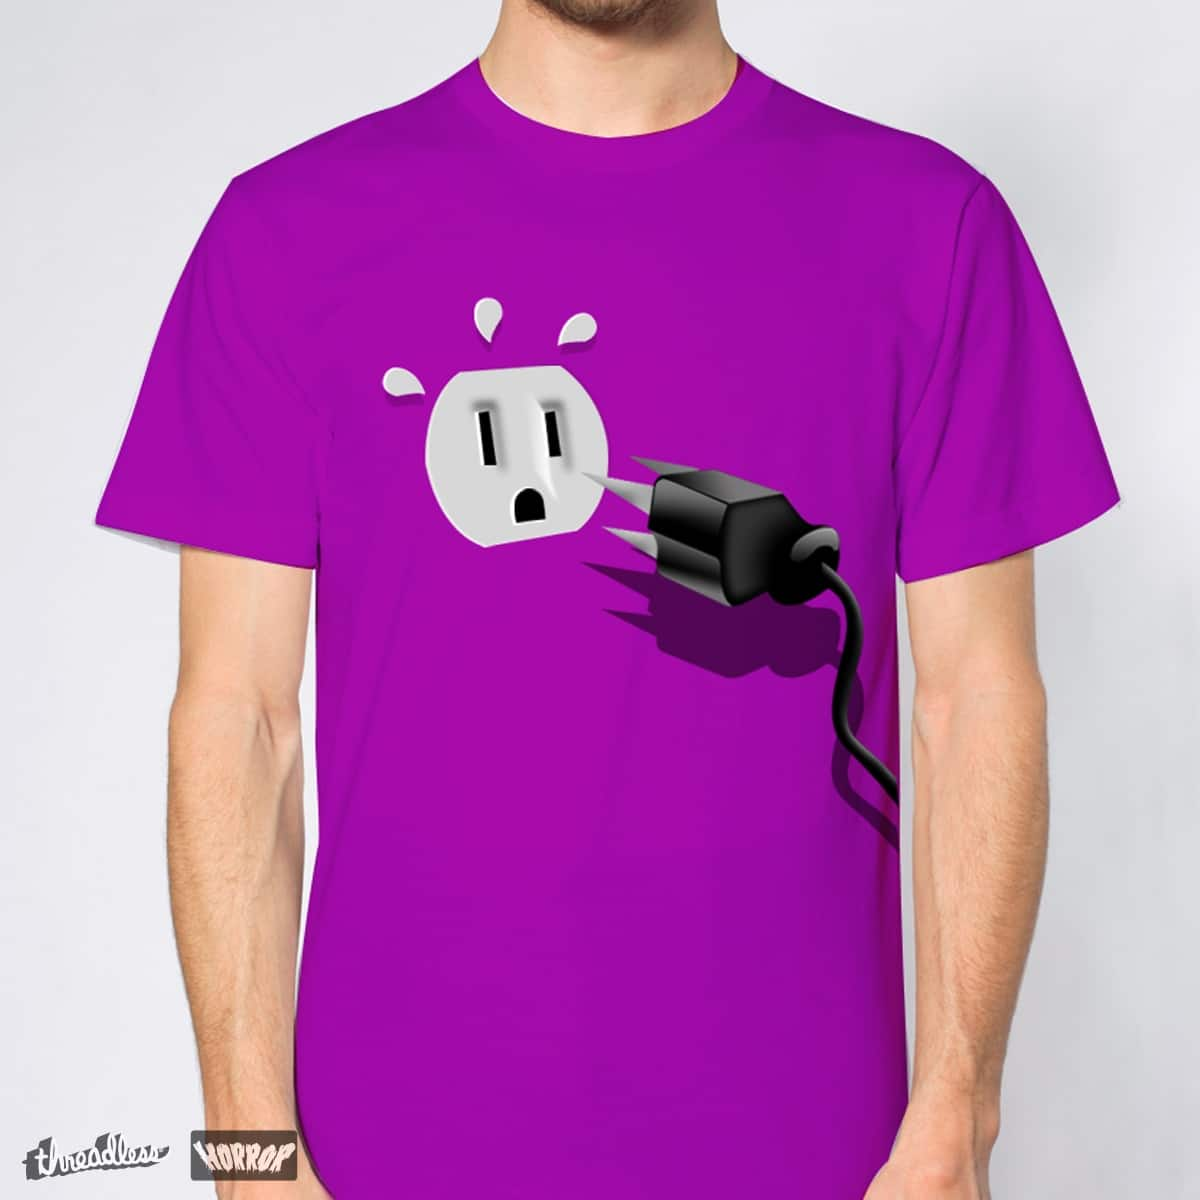 Electroshock! by Patricio Vegezzi on Threadless